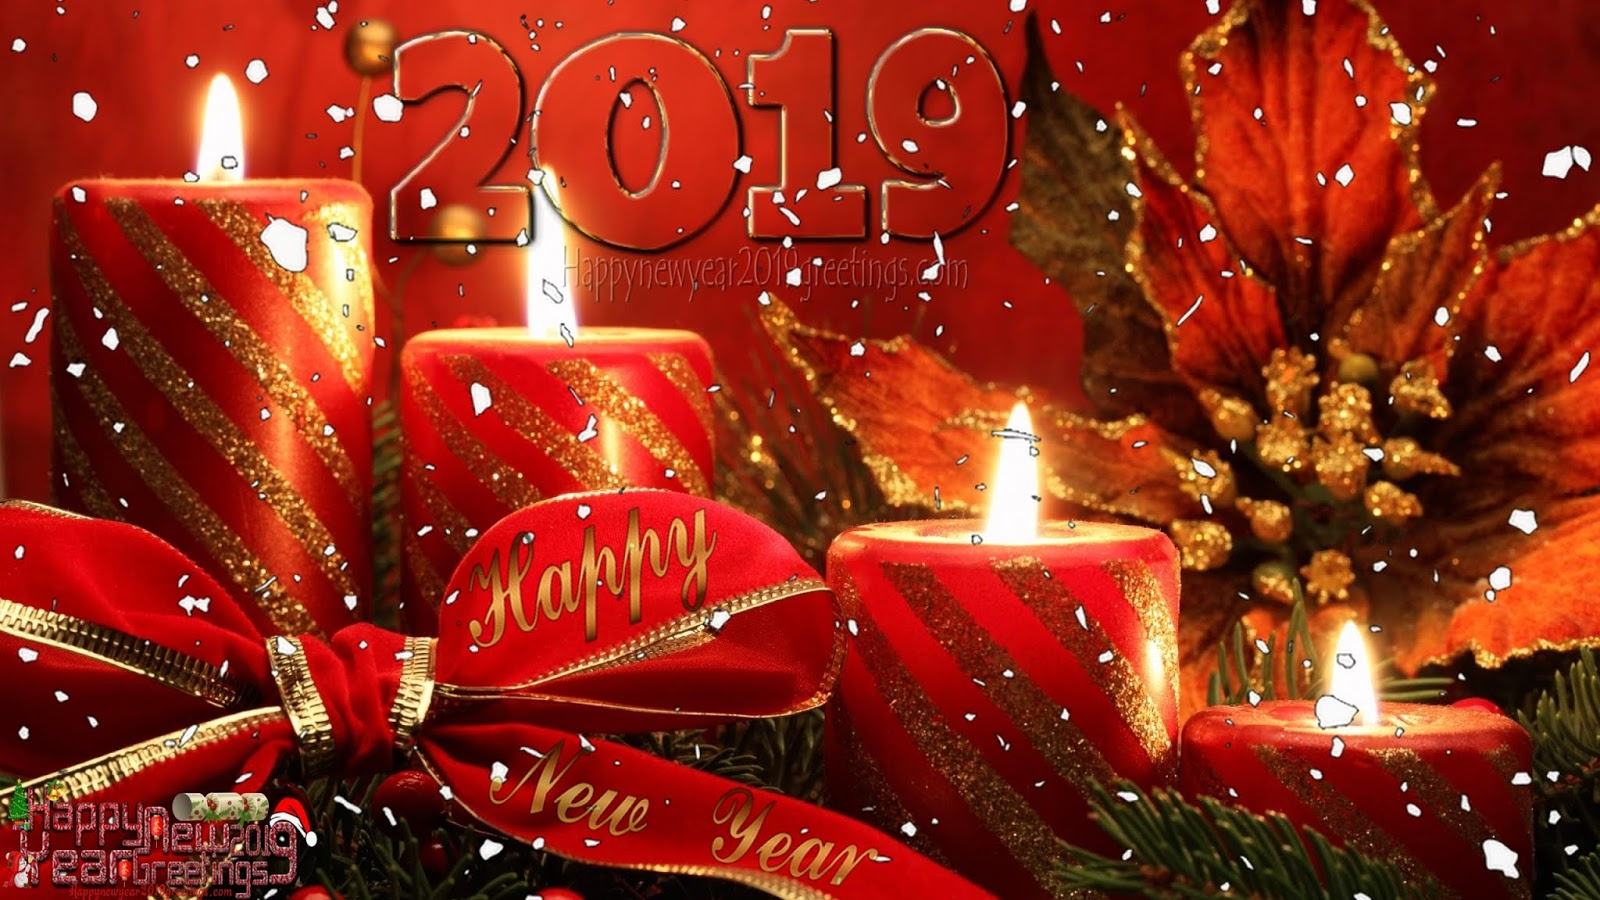 new year 2019 full hd images happy new year 2019 full hd images download